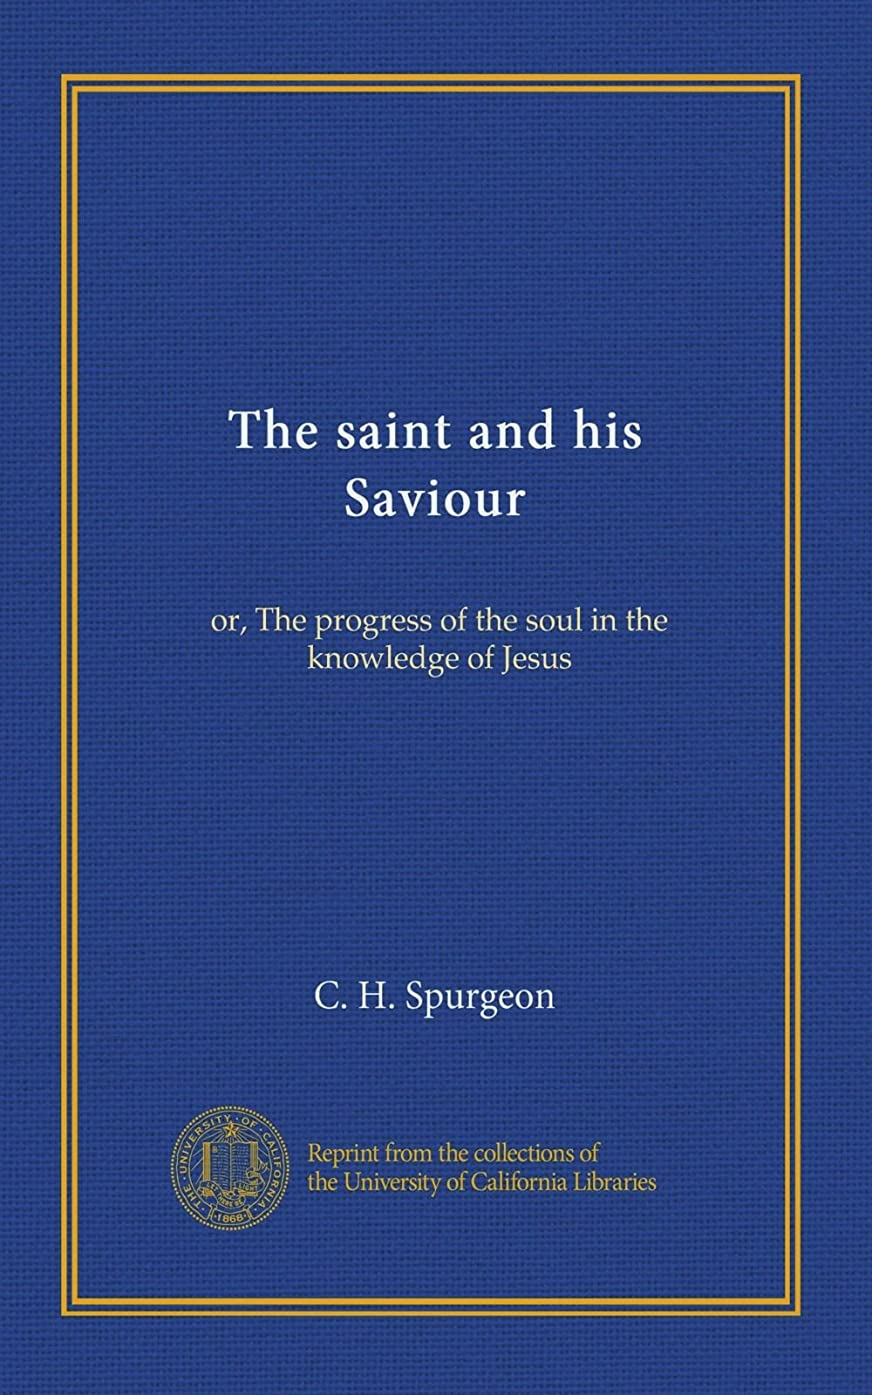 変化する梨ディレクターThe saint and his Saviour: or, The progress of the soul in the knowledge of Jesus